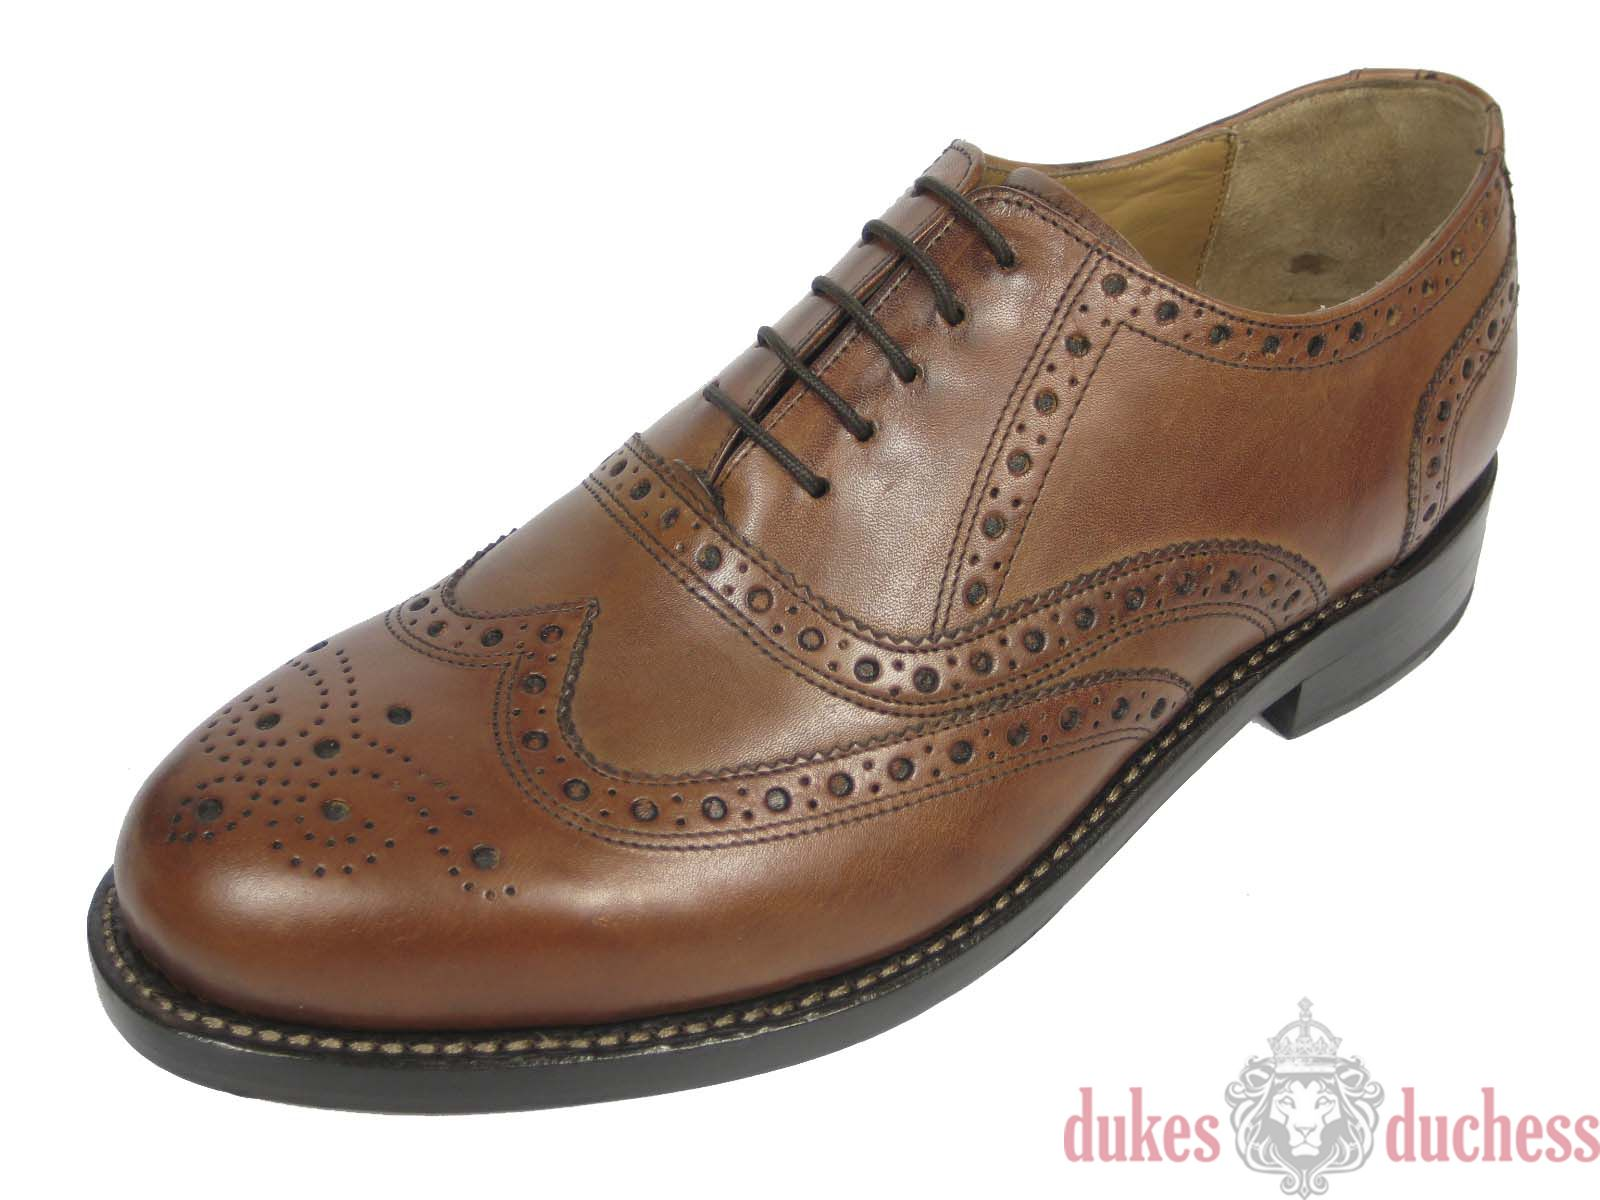 J.briggs Leather Shoes Frame Sewn Goodyear Welted Budapest Oxford Whisky Braun